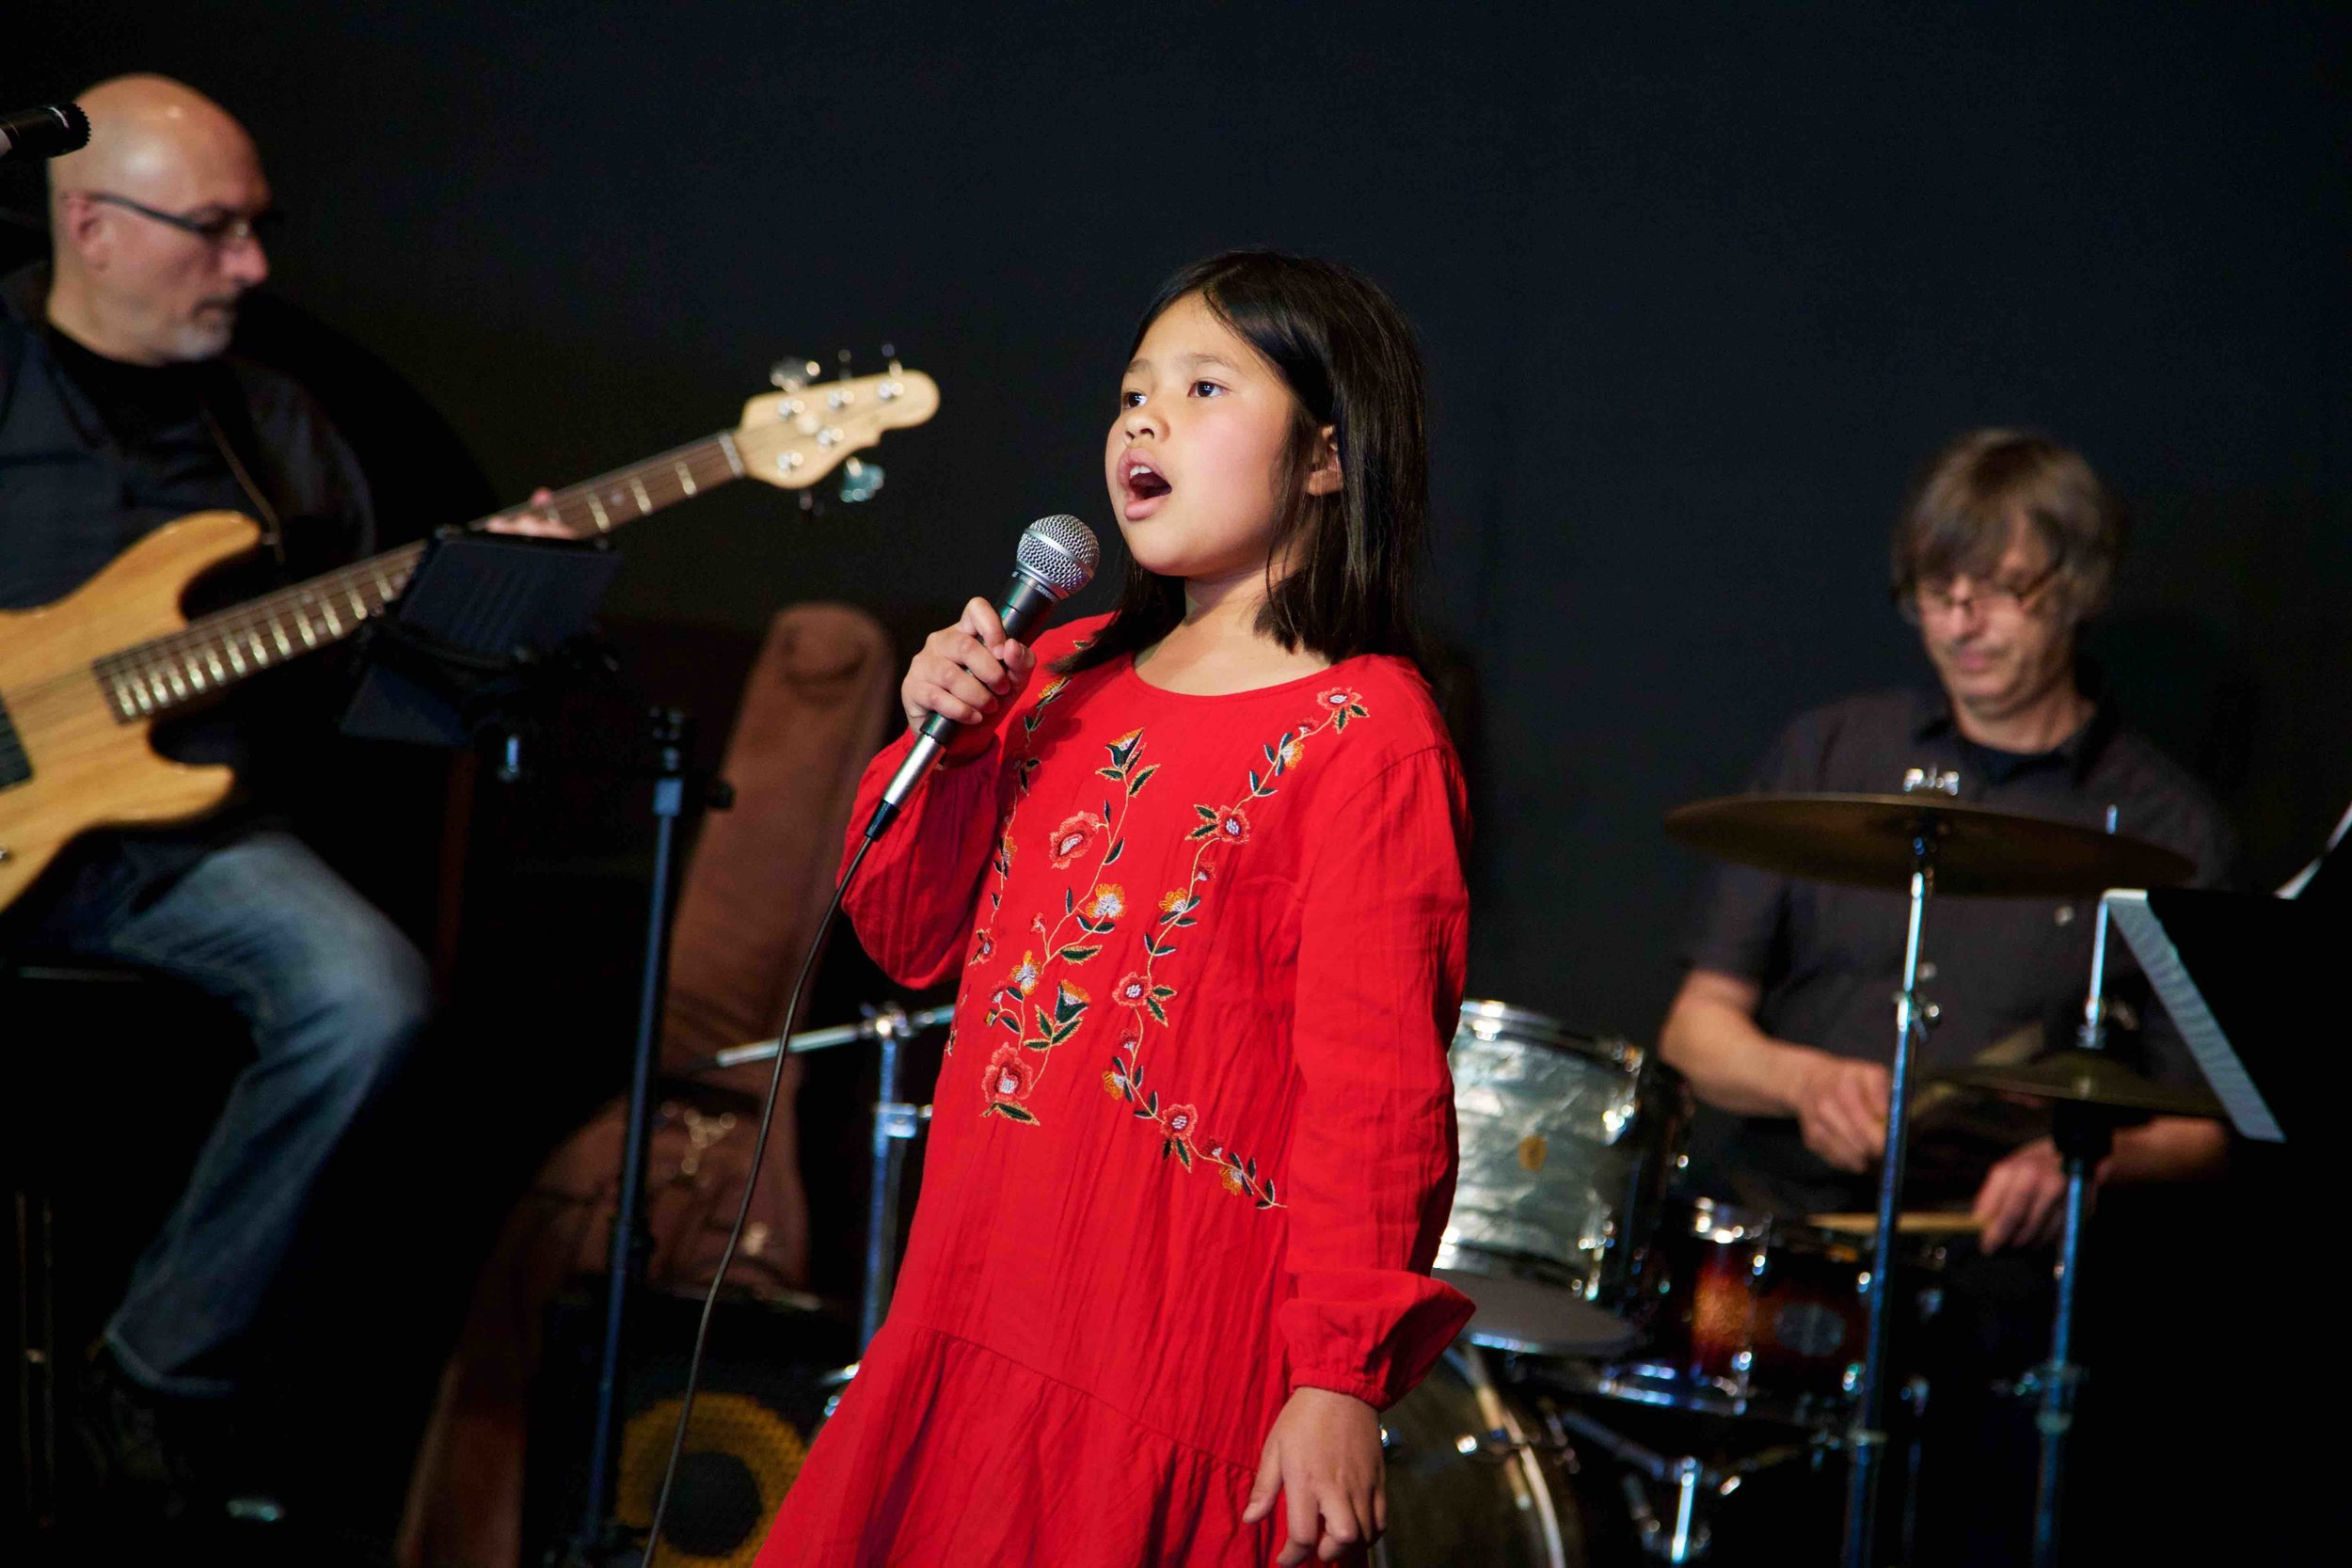 Snoqualmie voice lessons for kids, teens, and adults at Cascade Voice Academy (formerly Issaquah Voice Studio)